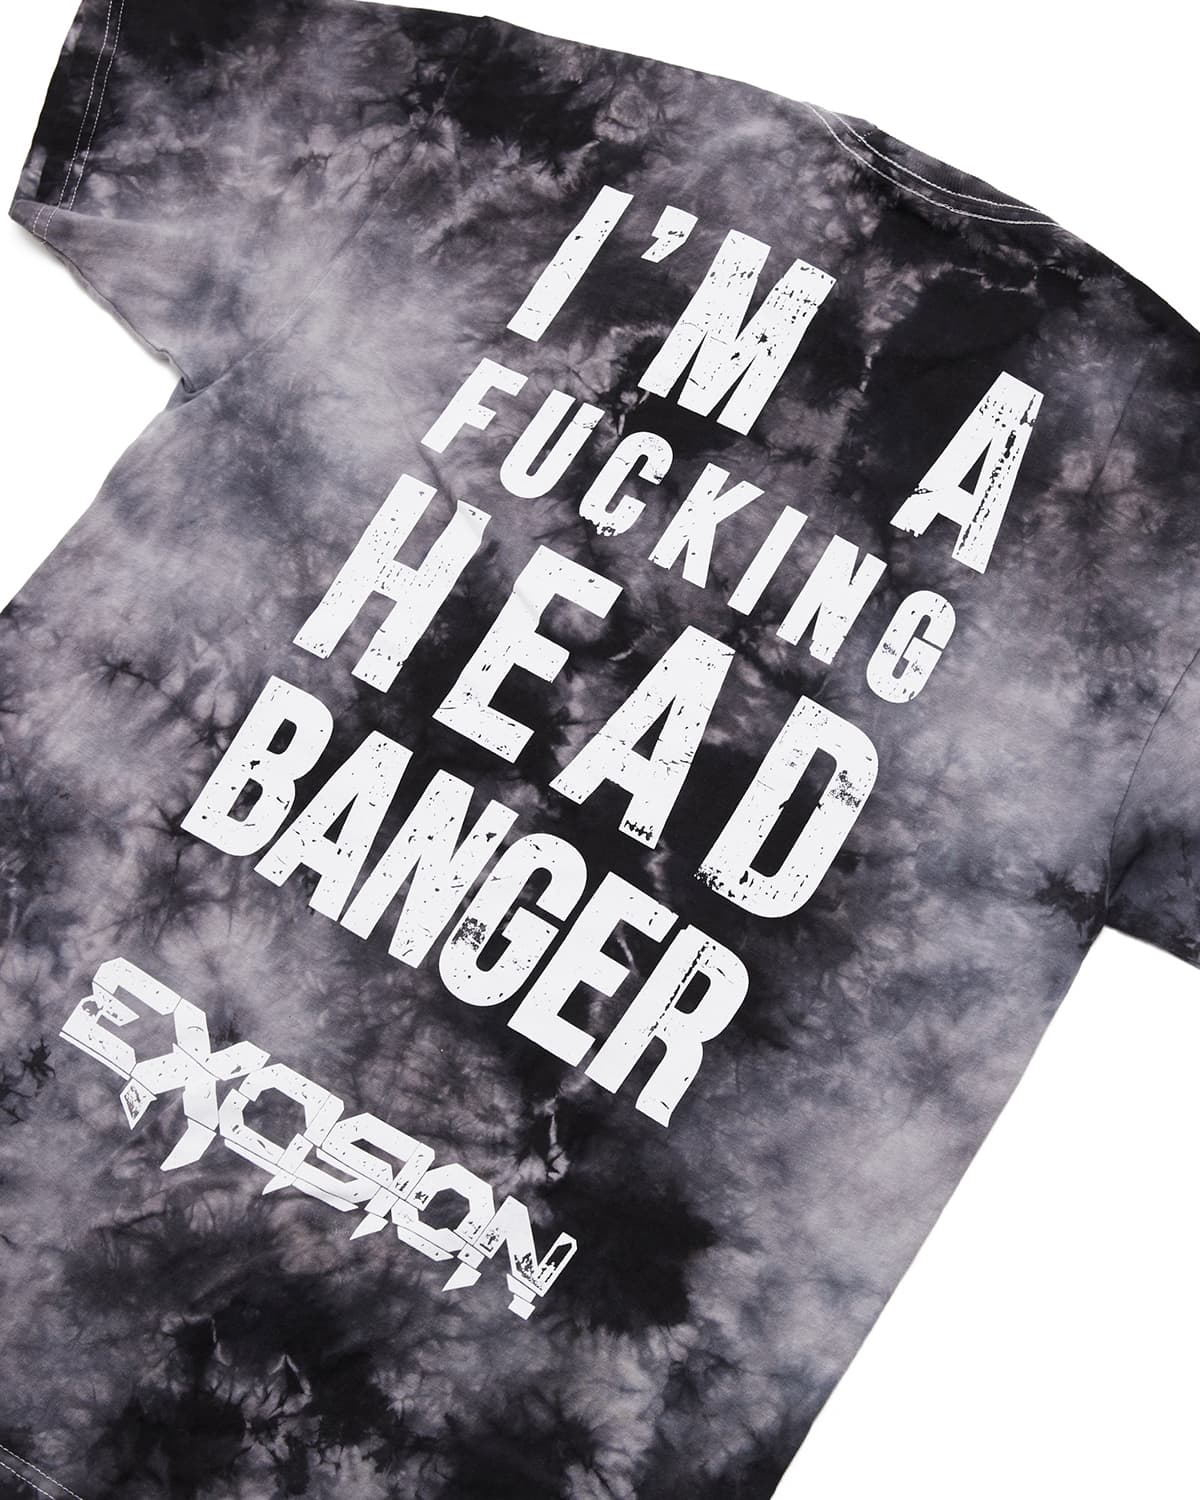 Excision 'Headbanger' Unisex Tie-Dye T-Shirt - Black